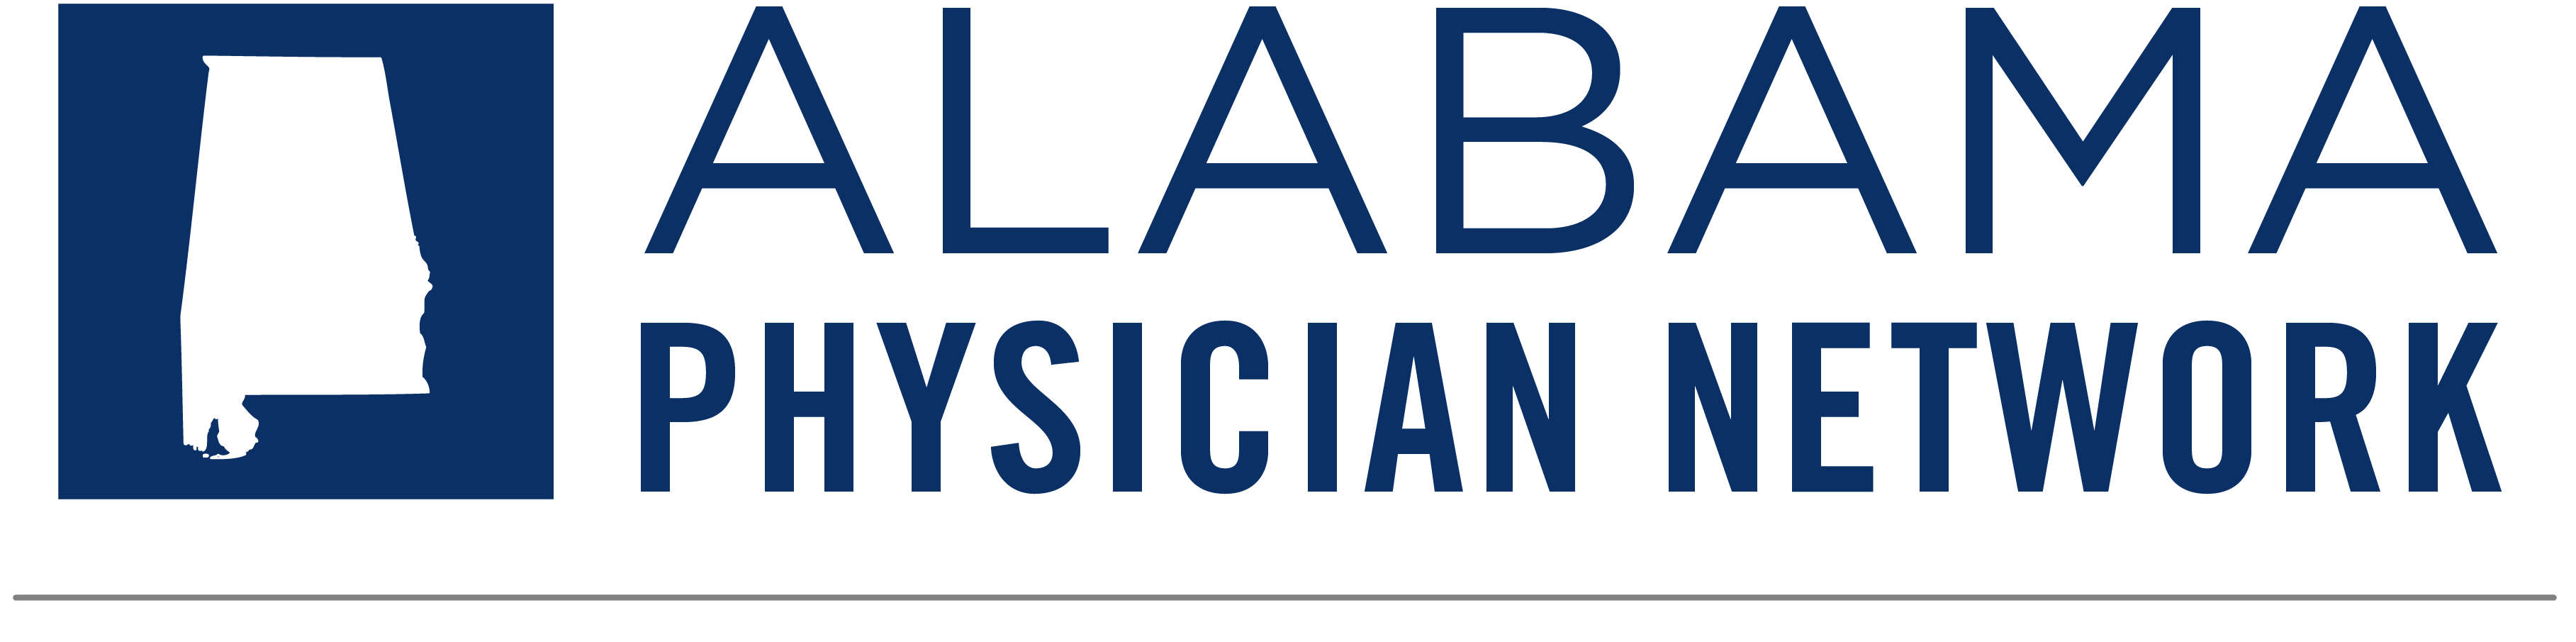 Alabama Physician Network